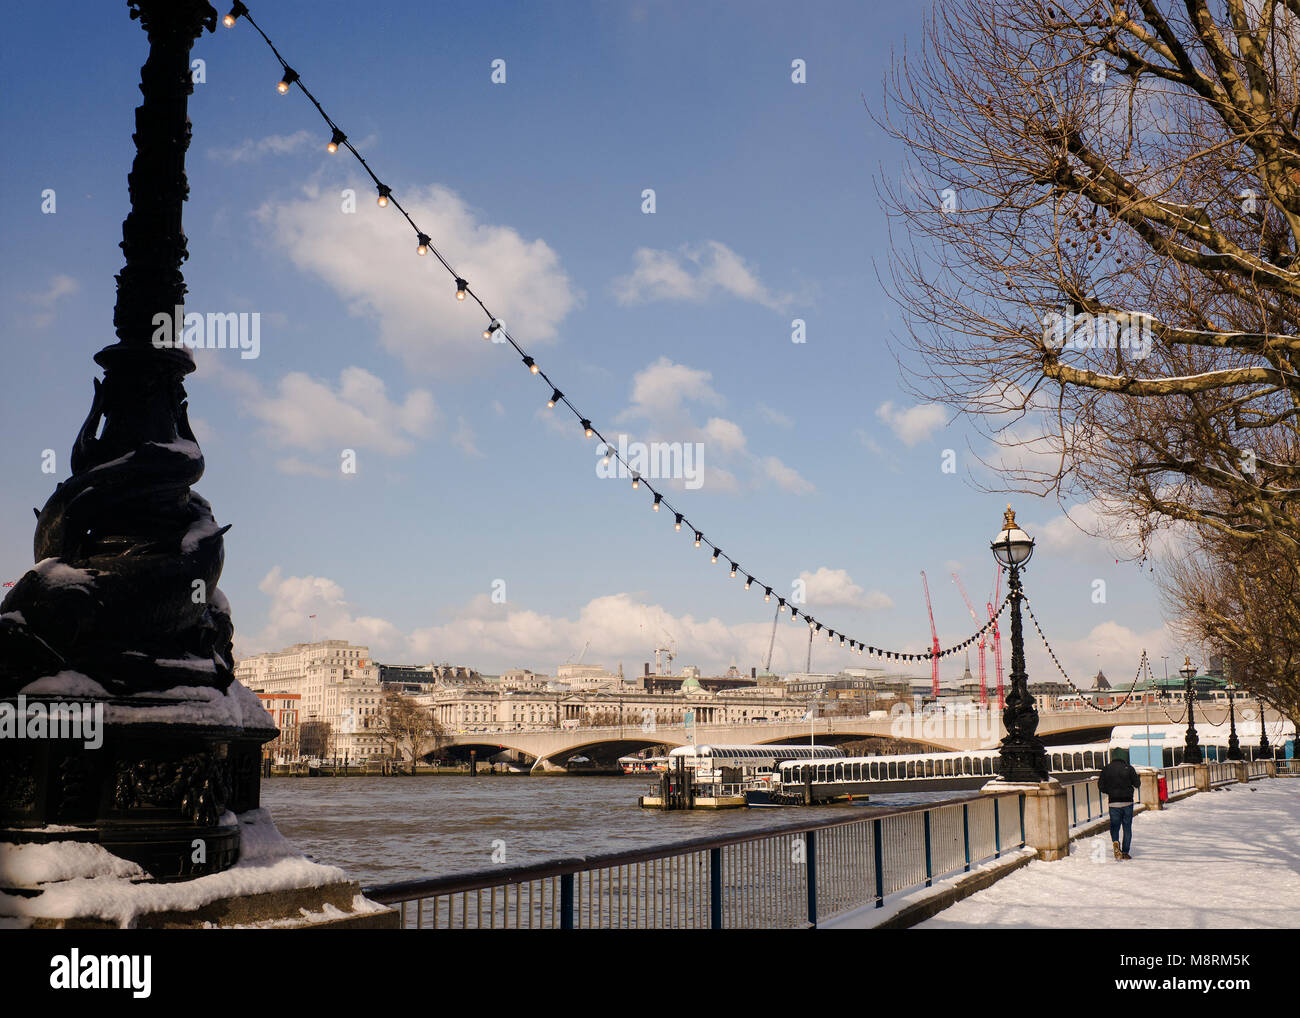 The Queens walk' southbank river Thames after snow fall London UK - Stock Image